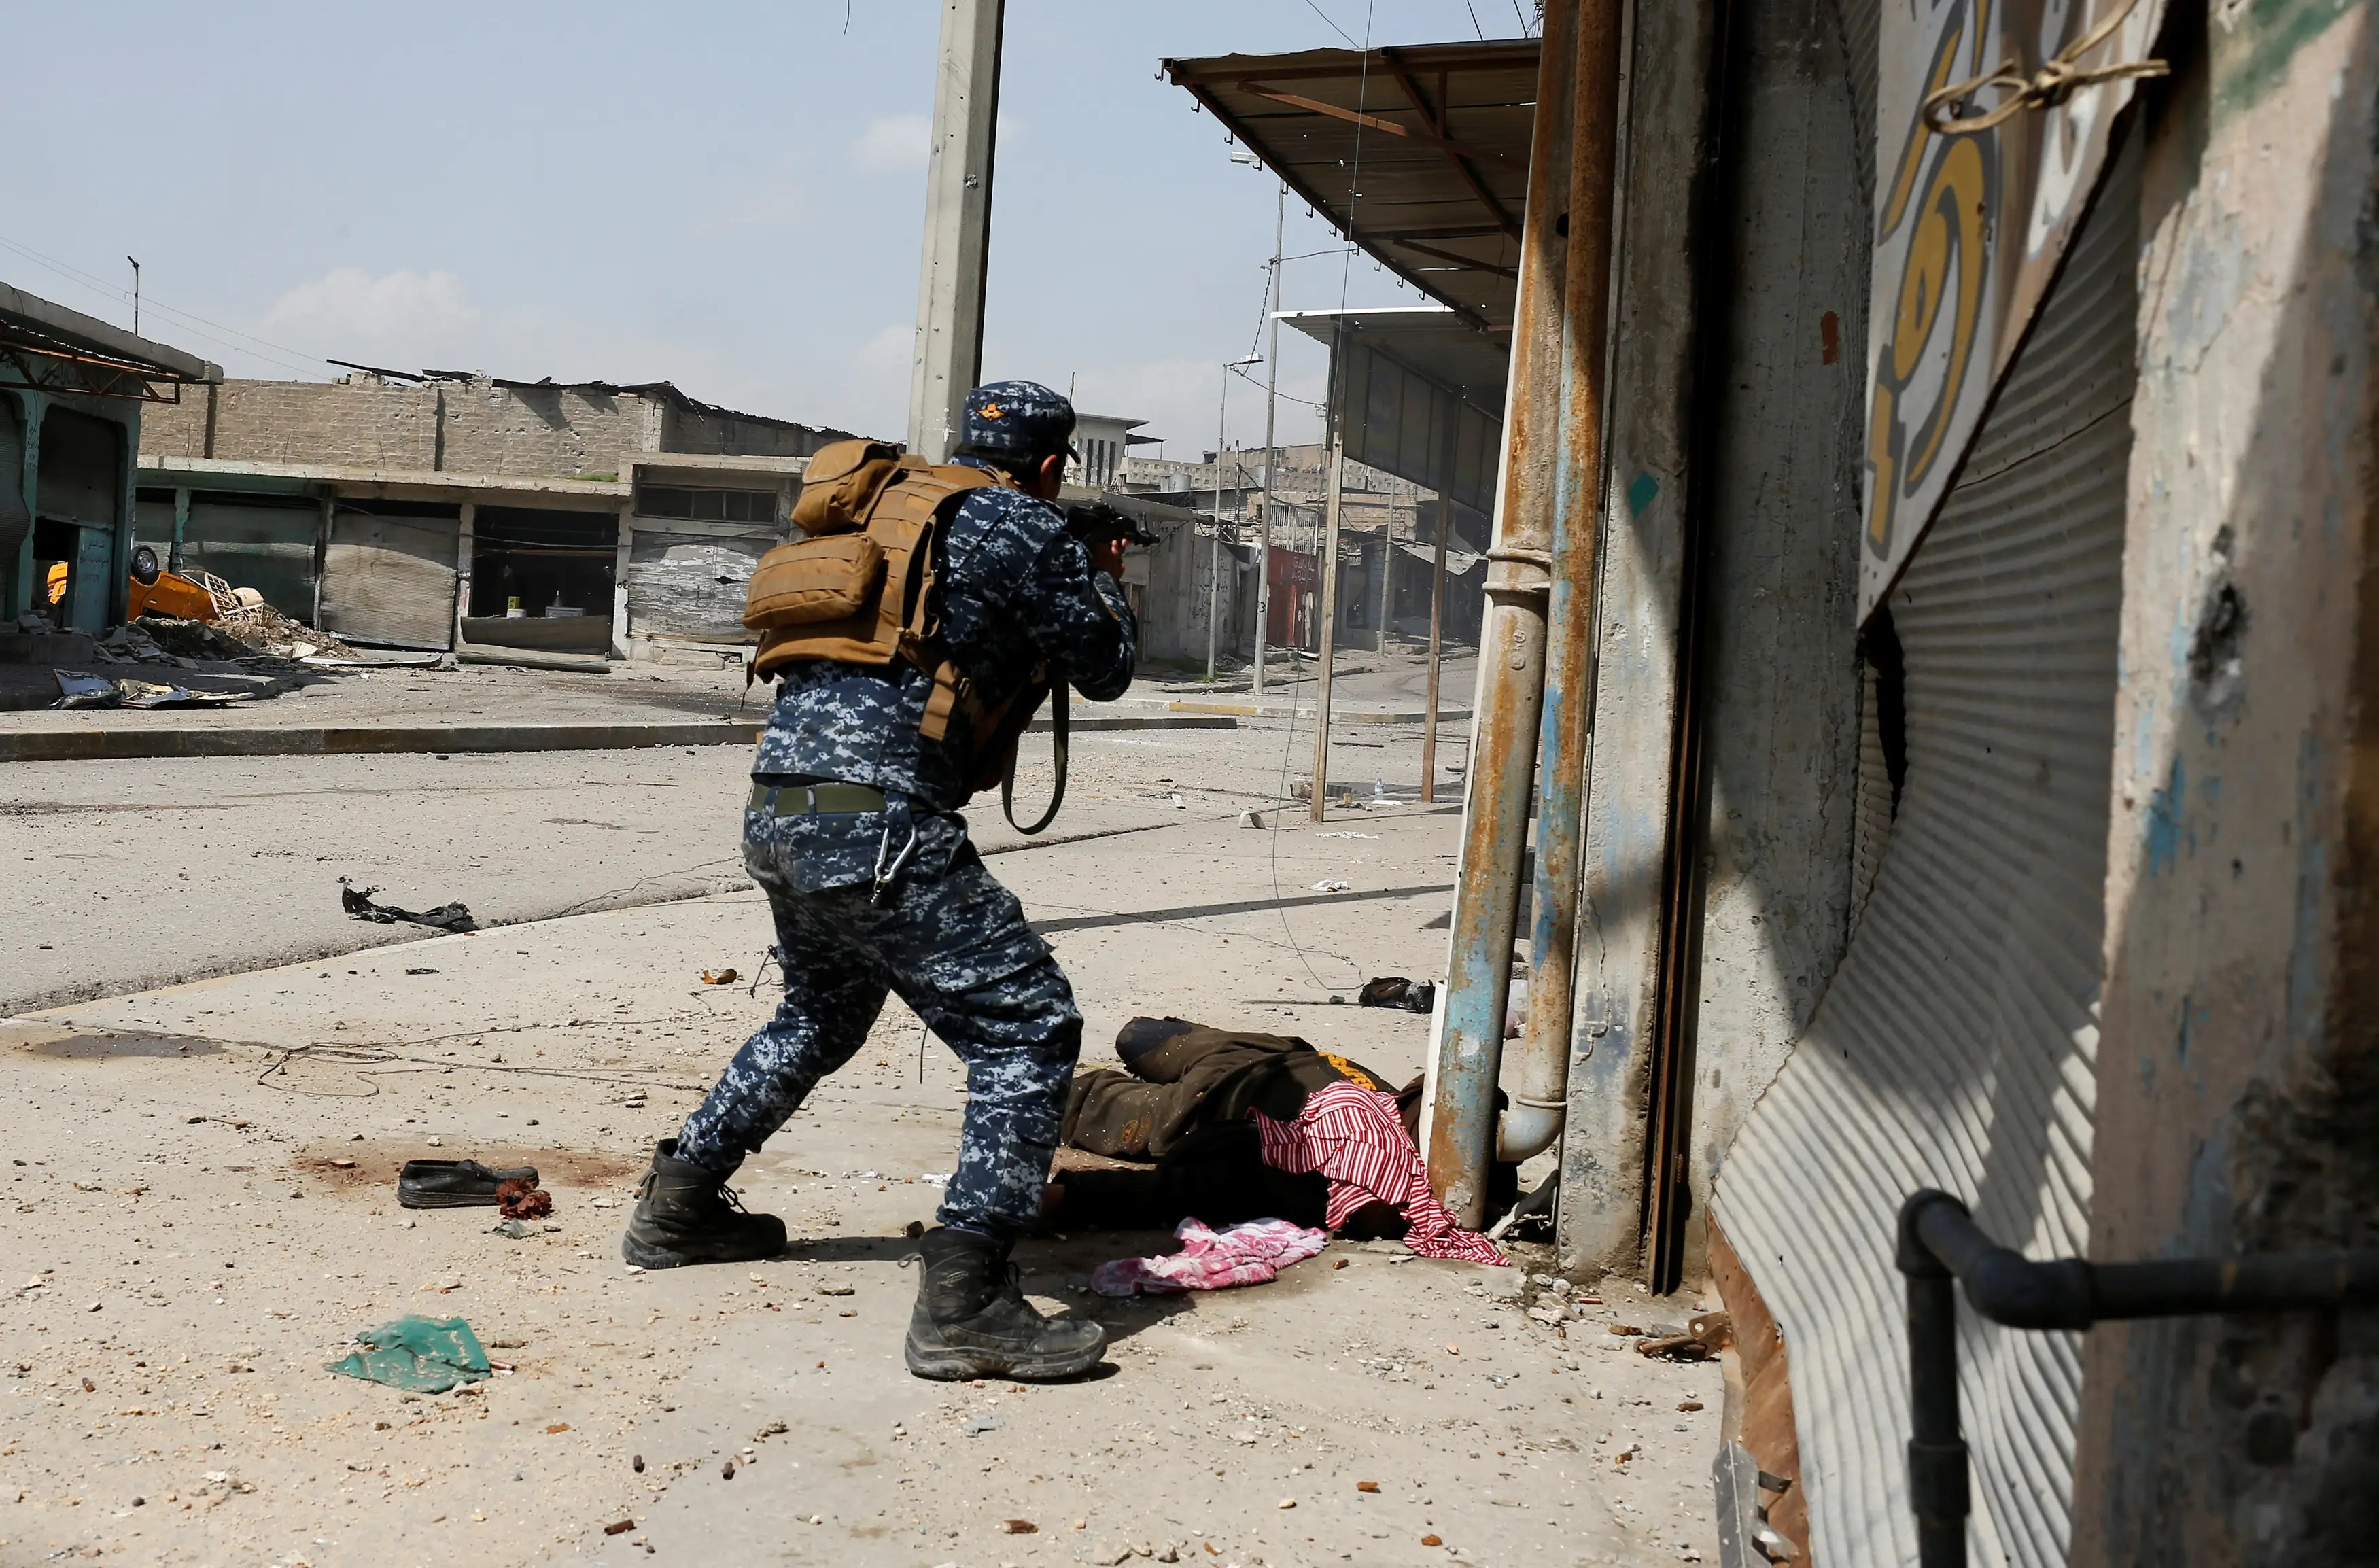 Iraq Mosul security forces soldiers soldiers killed wounded victims